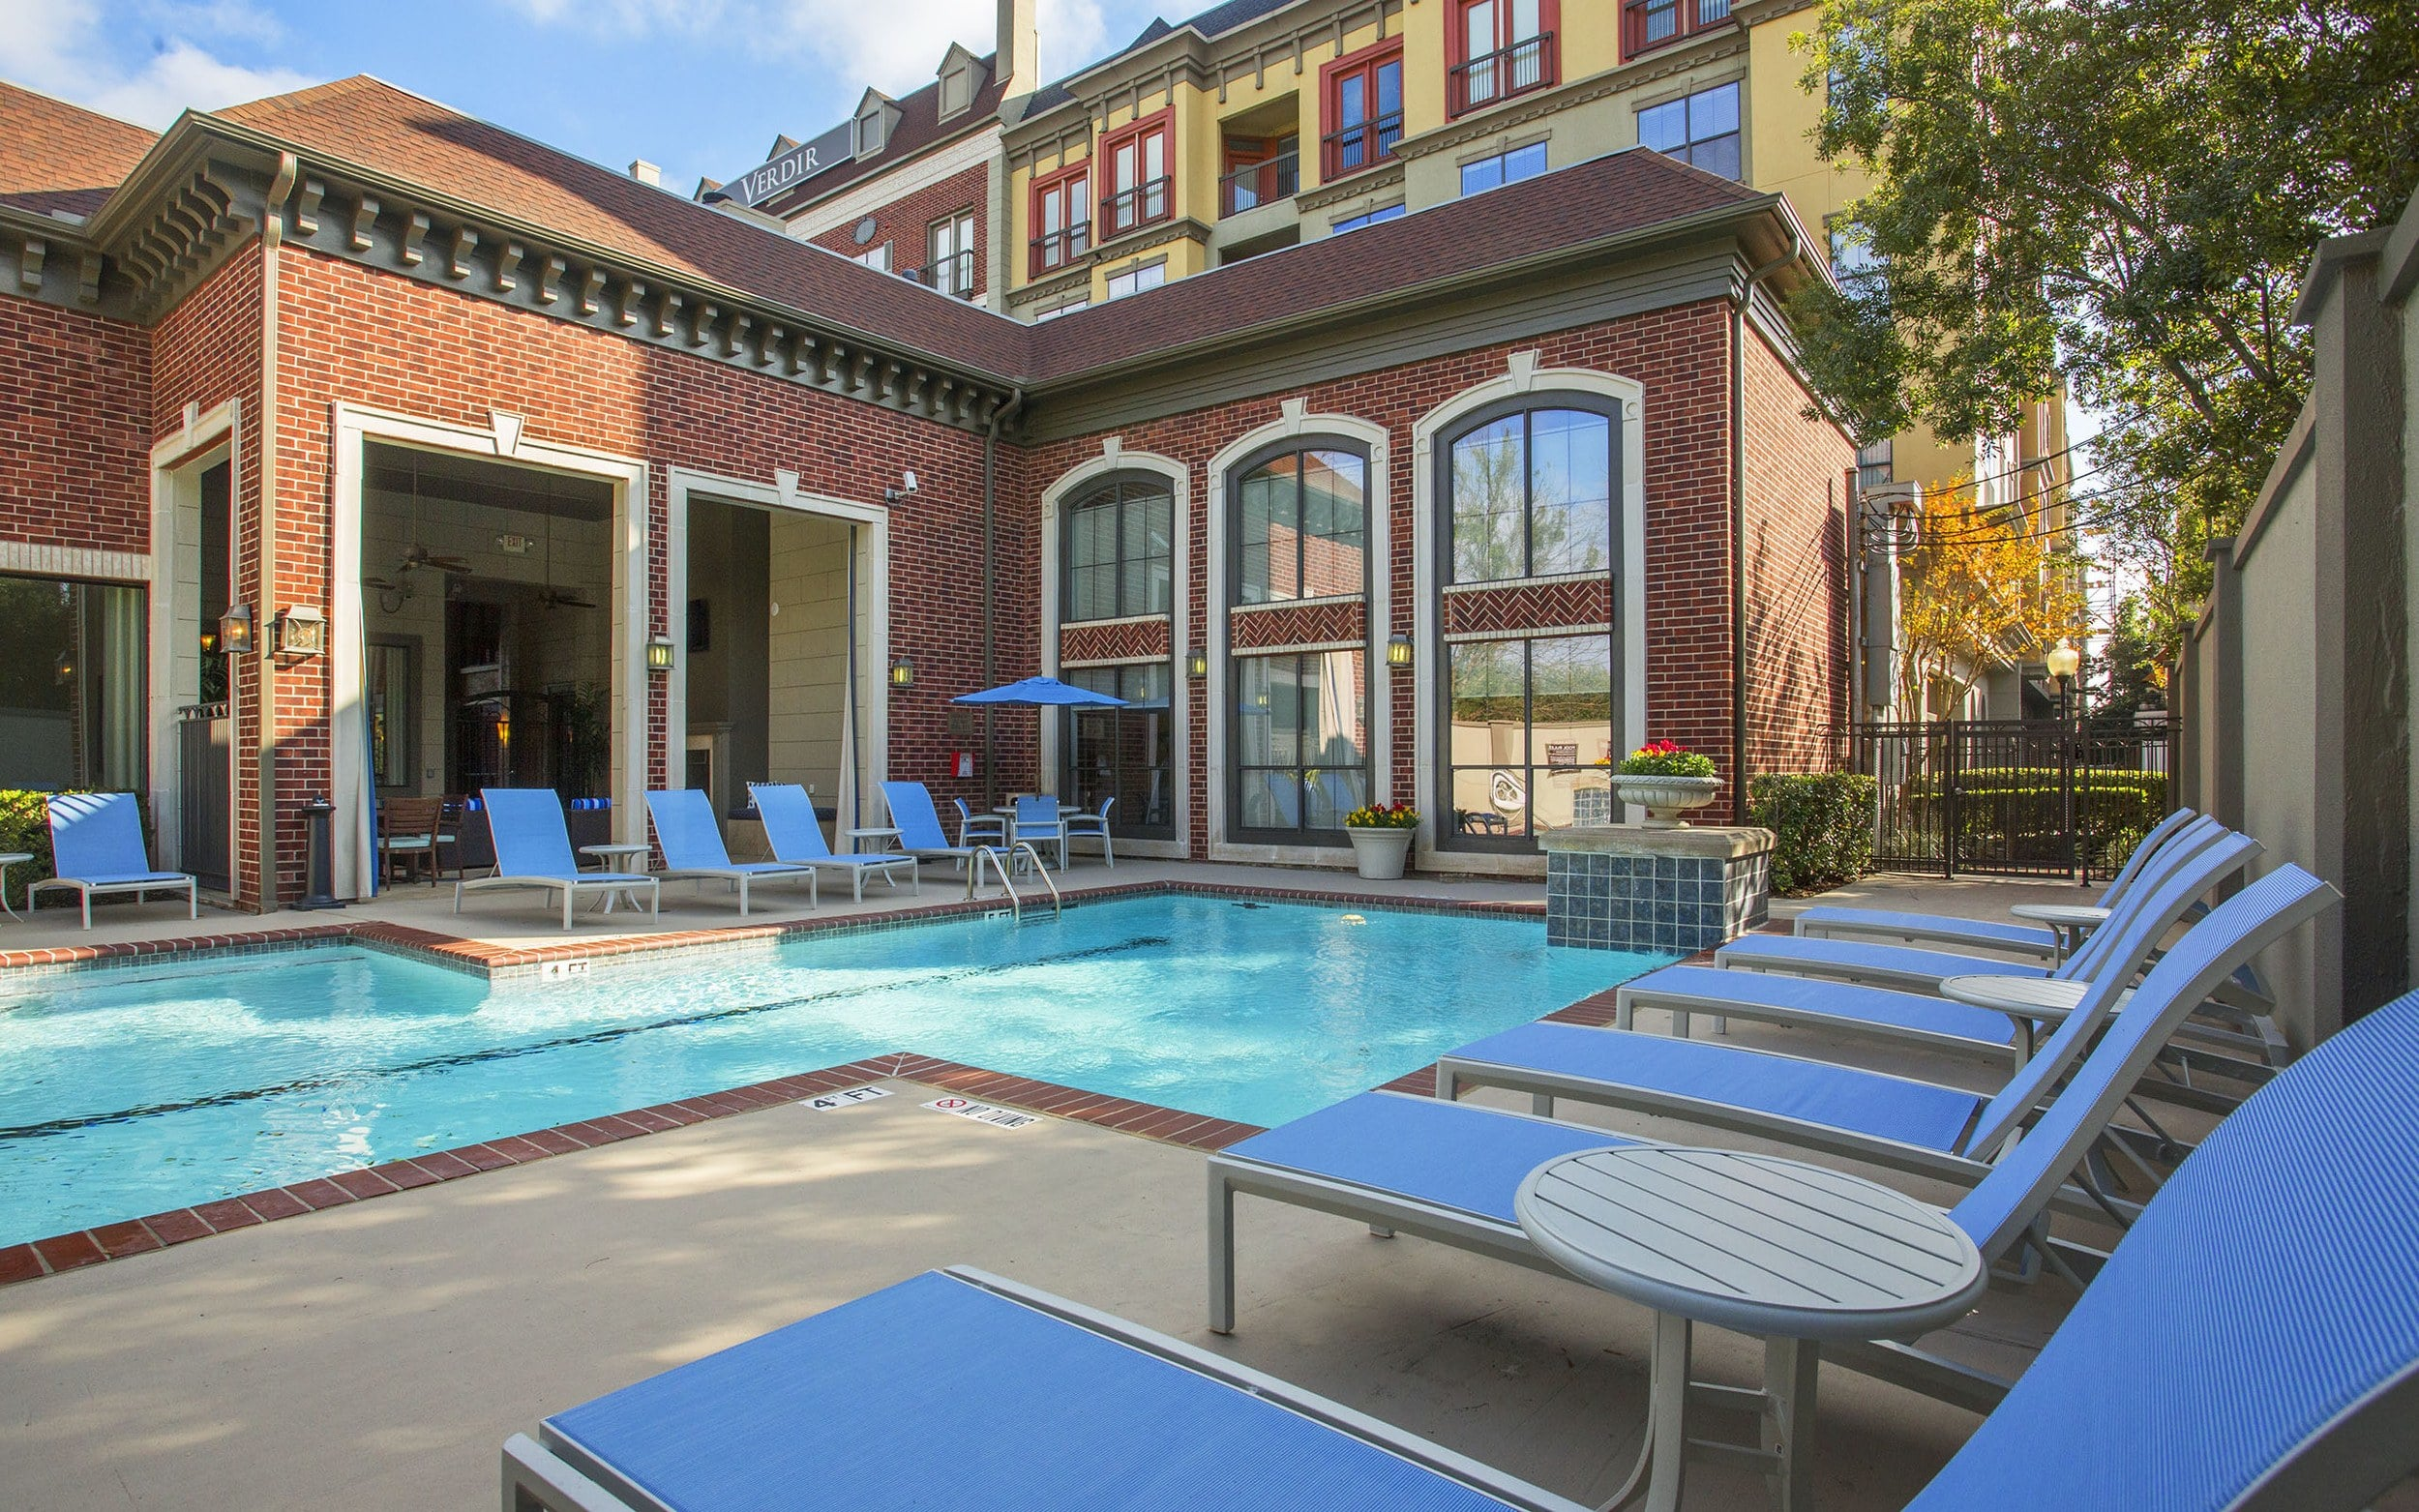 Luxury Swimming Pool and lounge chairs at Verdir at Hermann Park in Houston, Texas